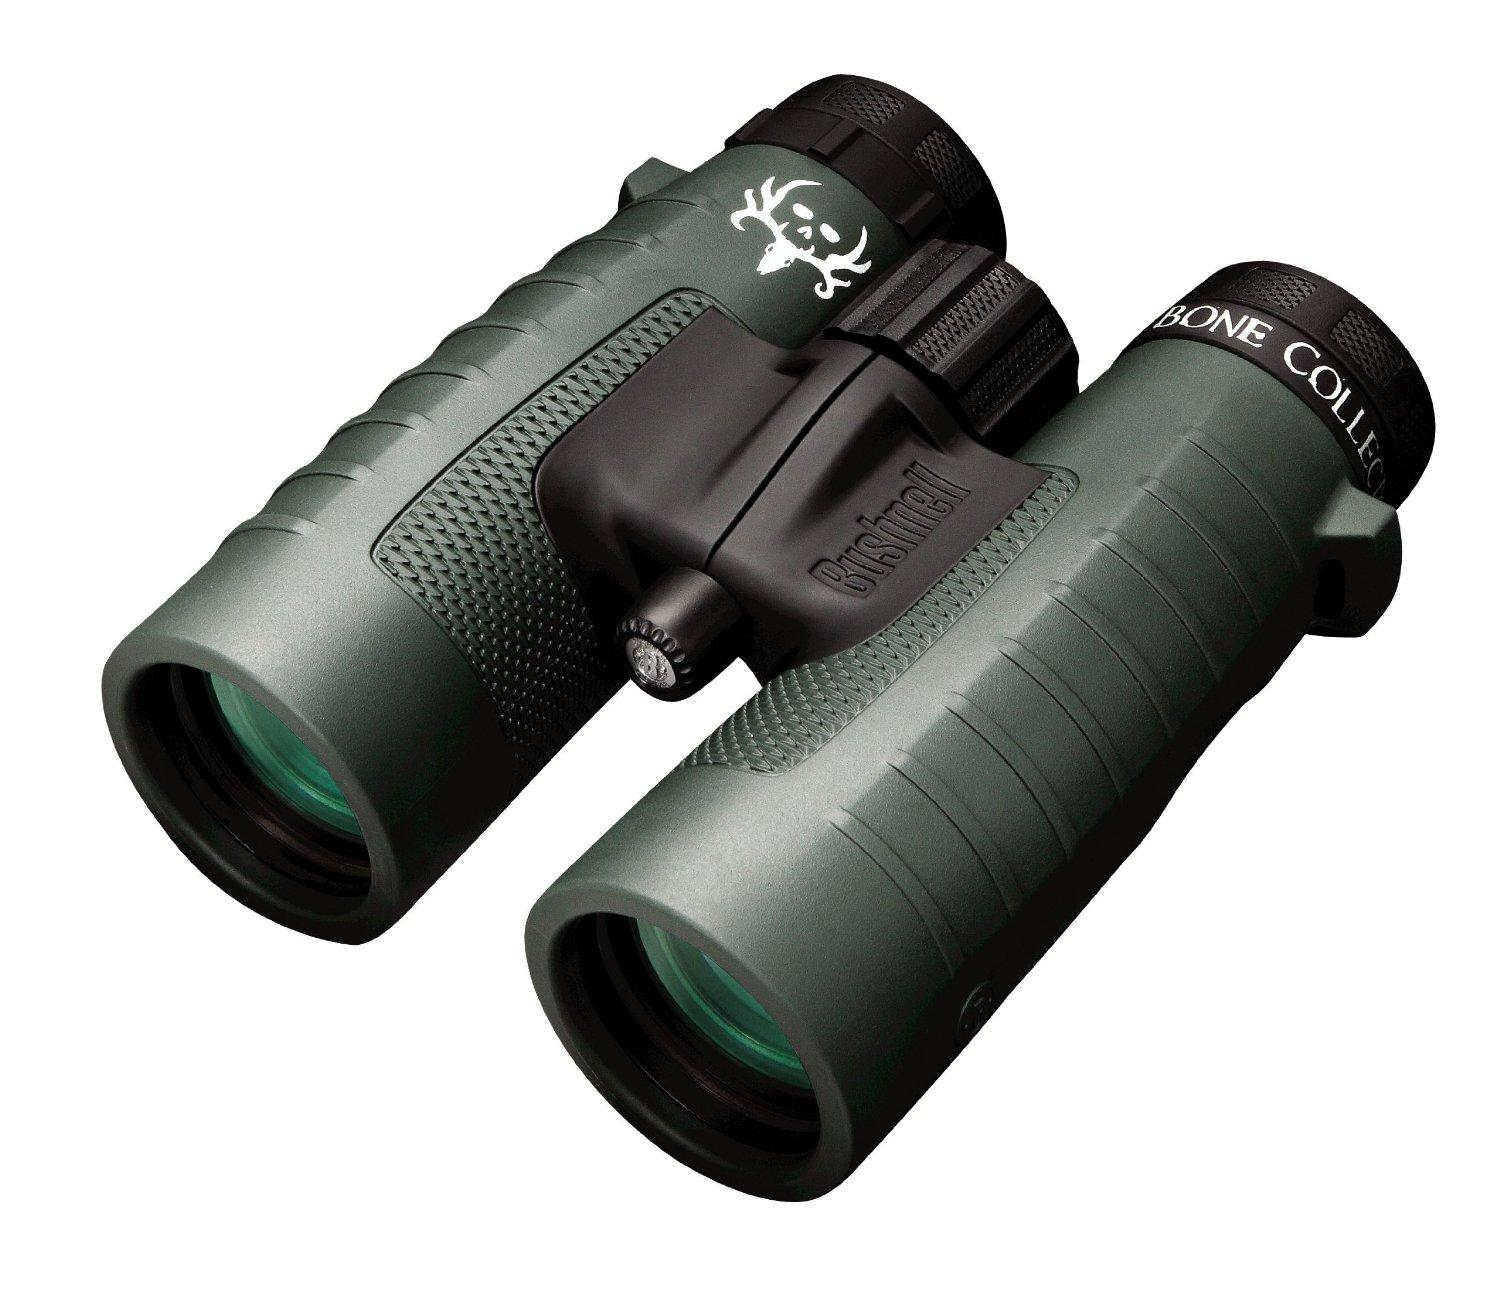 Bushnell Trophy XLT Roof Prism Binoculars, 10x42mm (Bone Collector Edition)